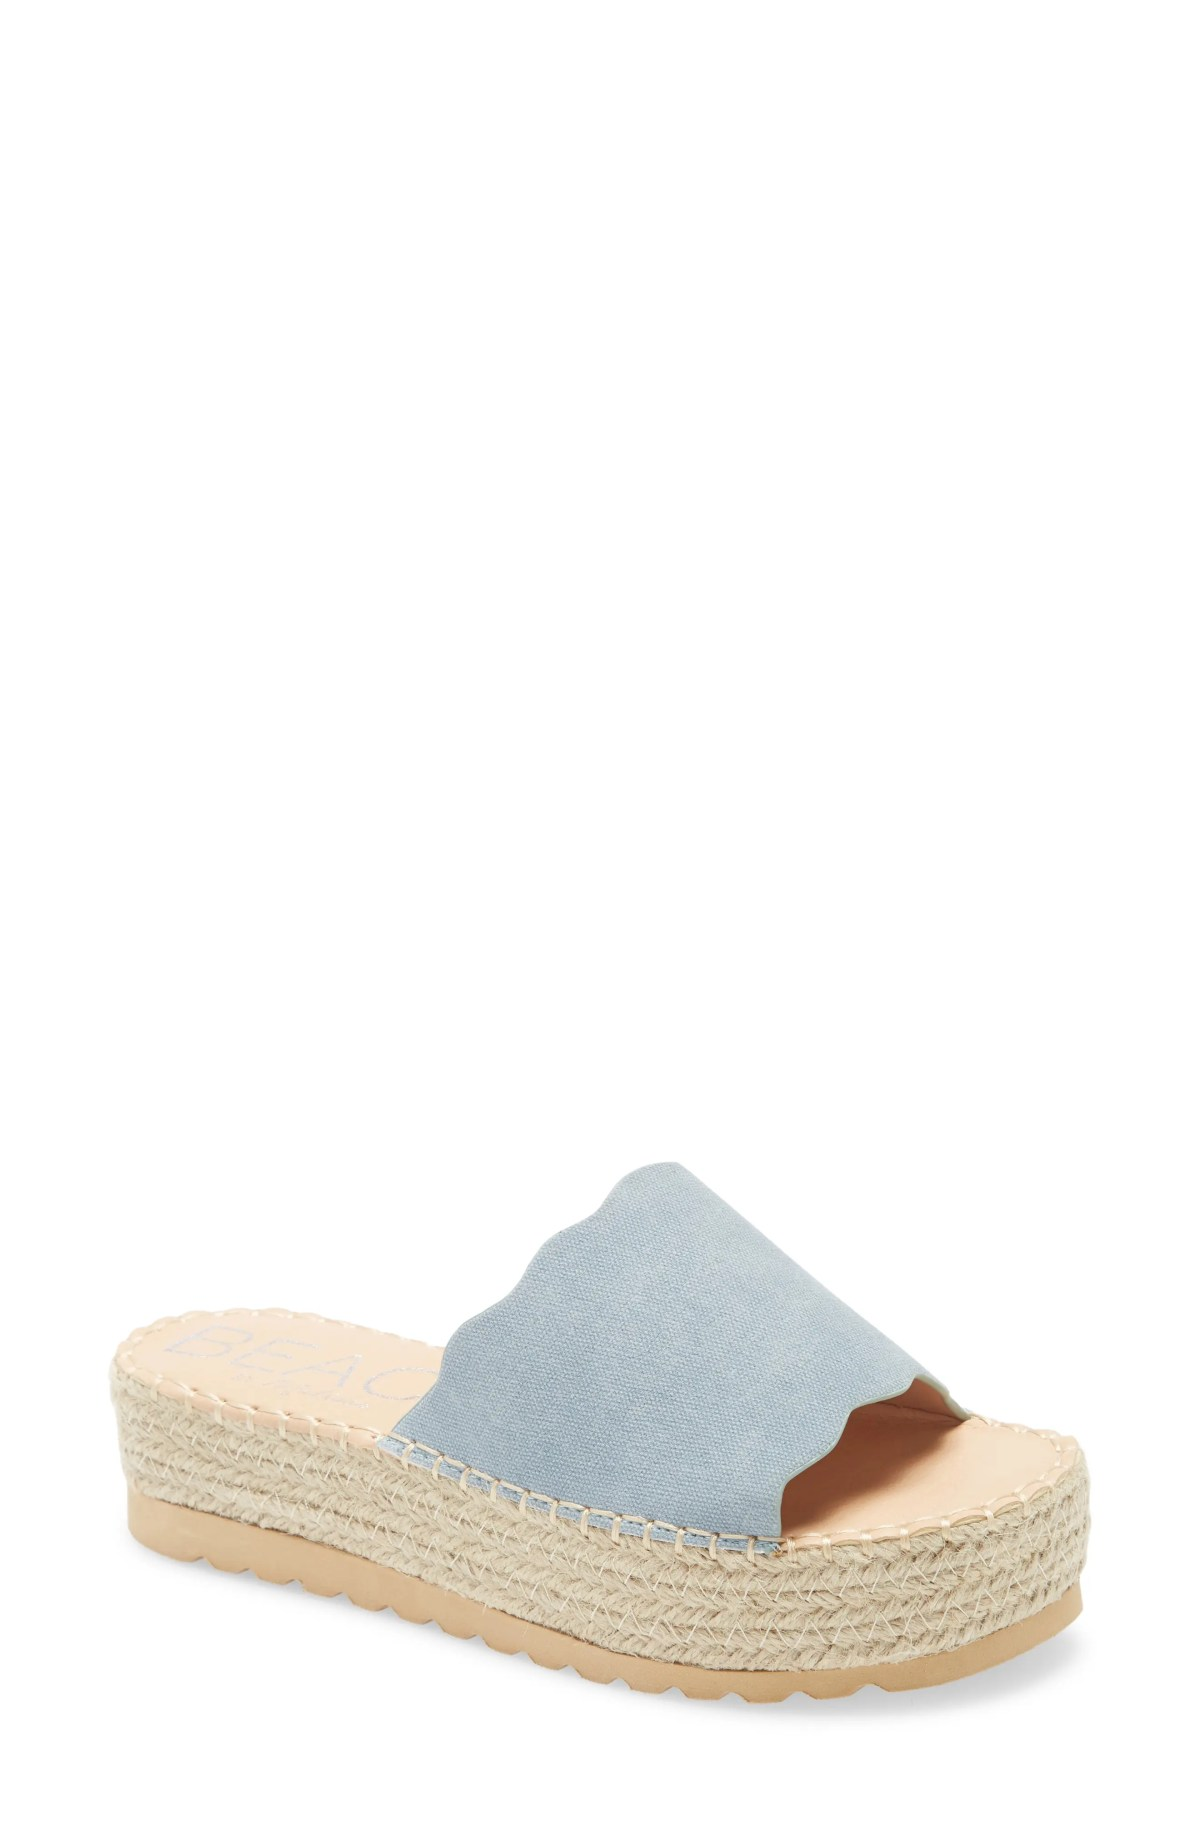 BEACH BY MATISSE Palm Platform Slide Sandal, Main, color, BLUE FABRIC